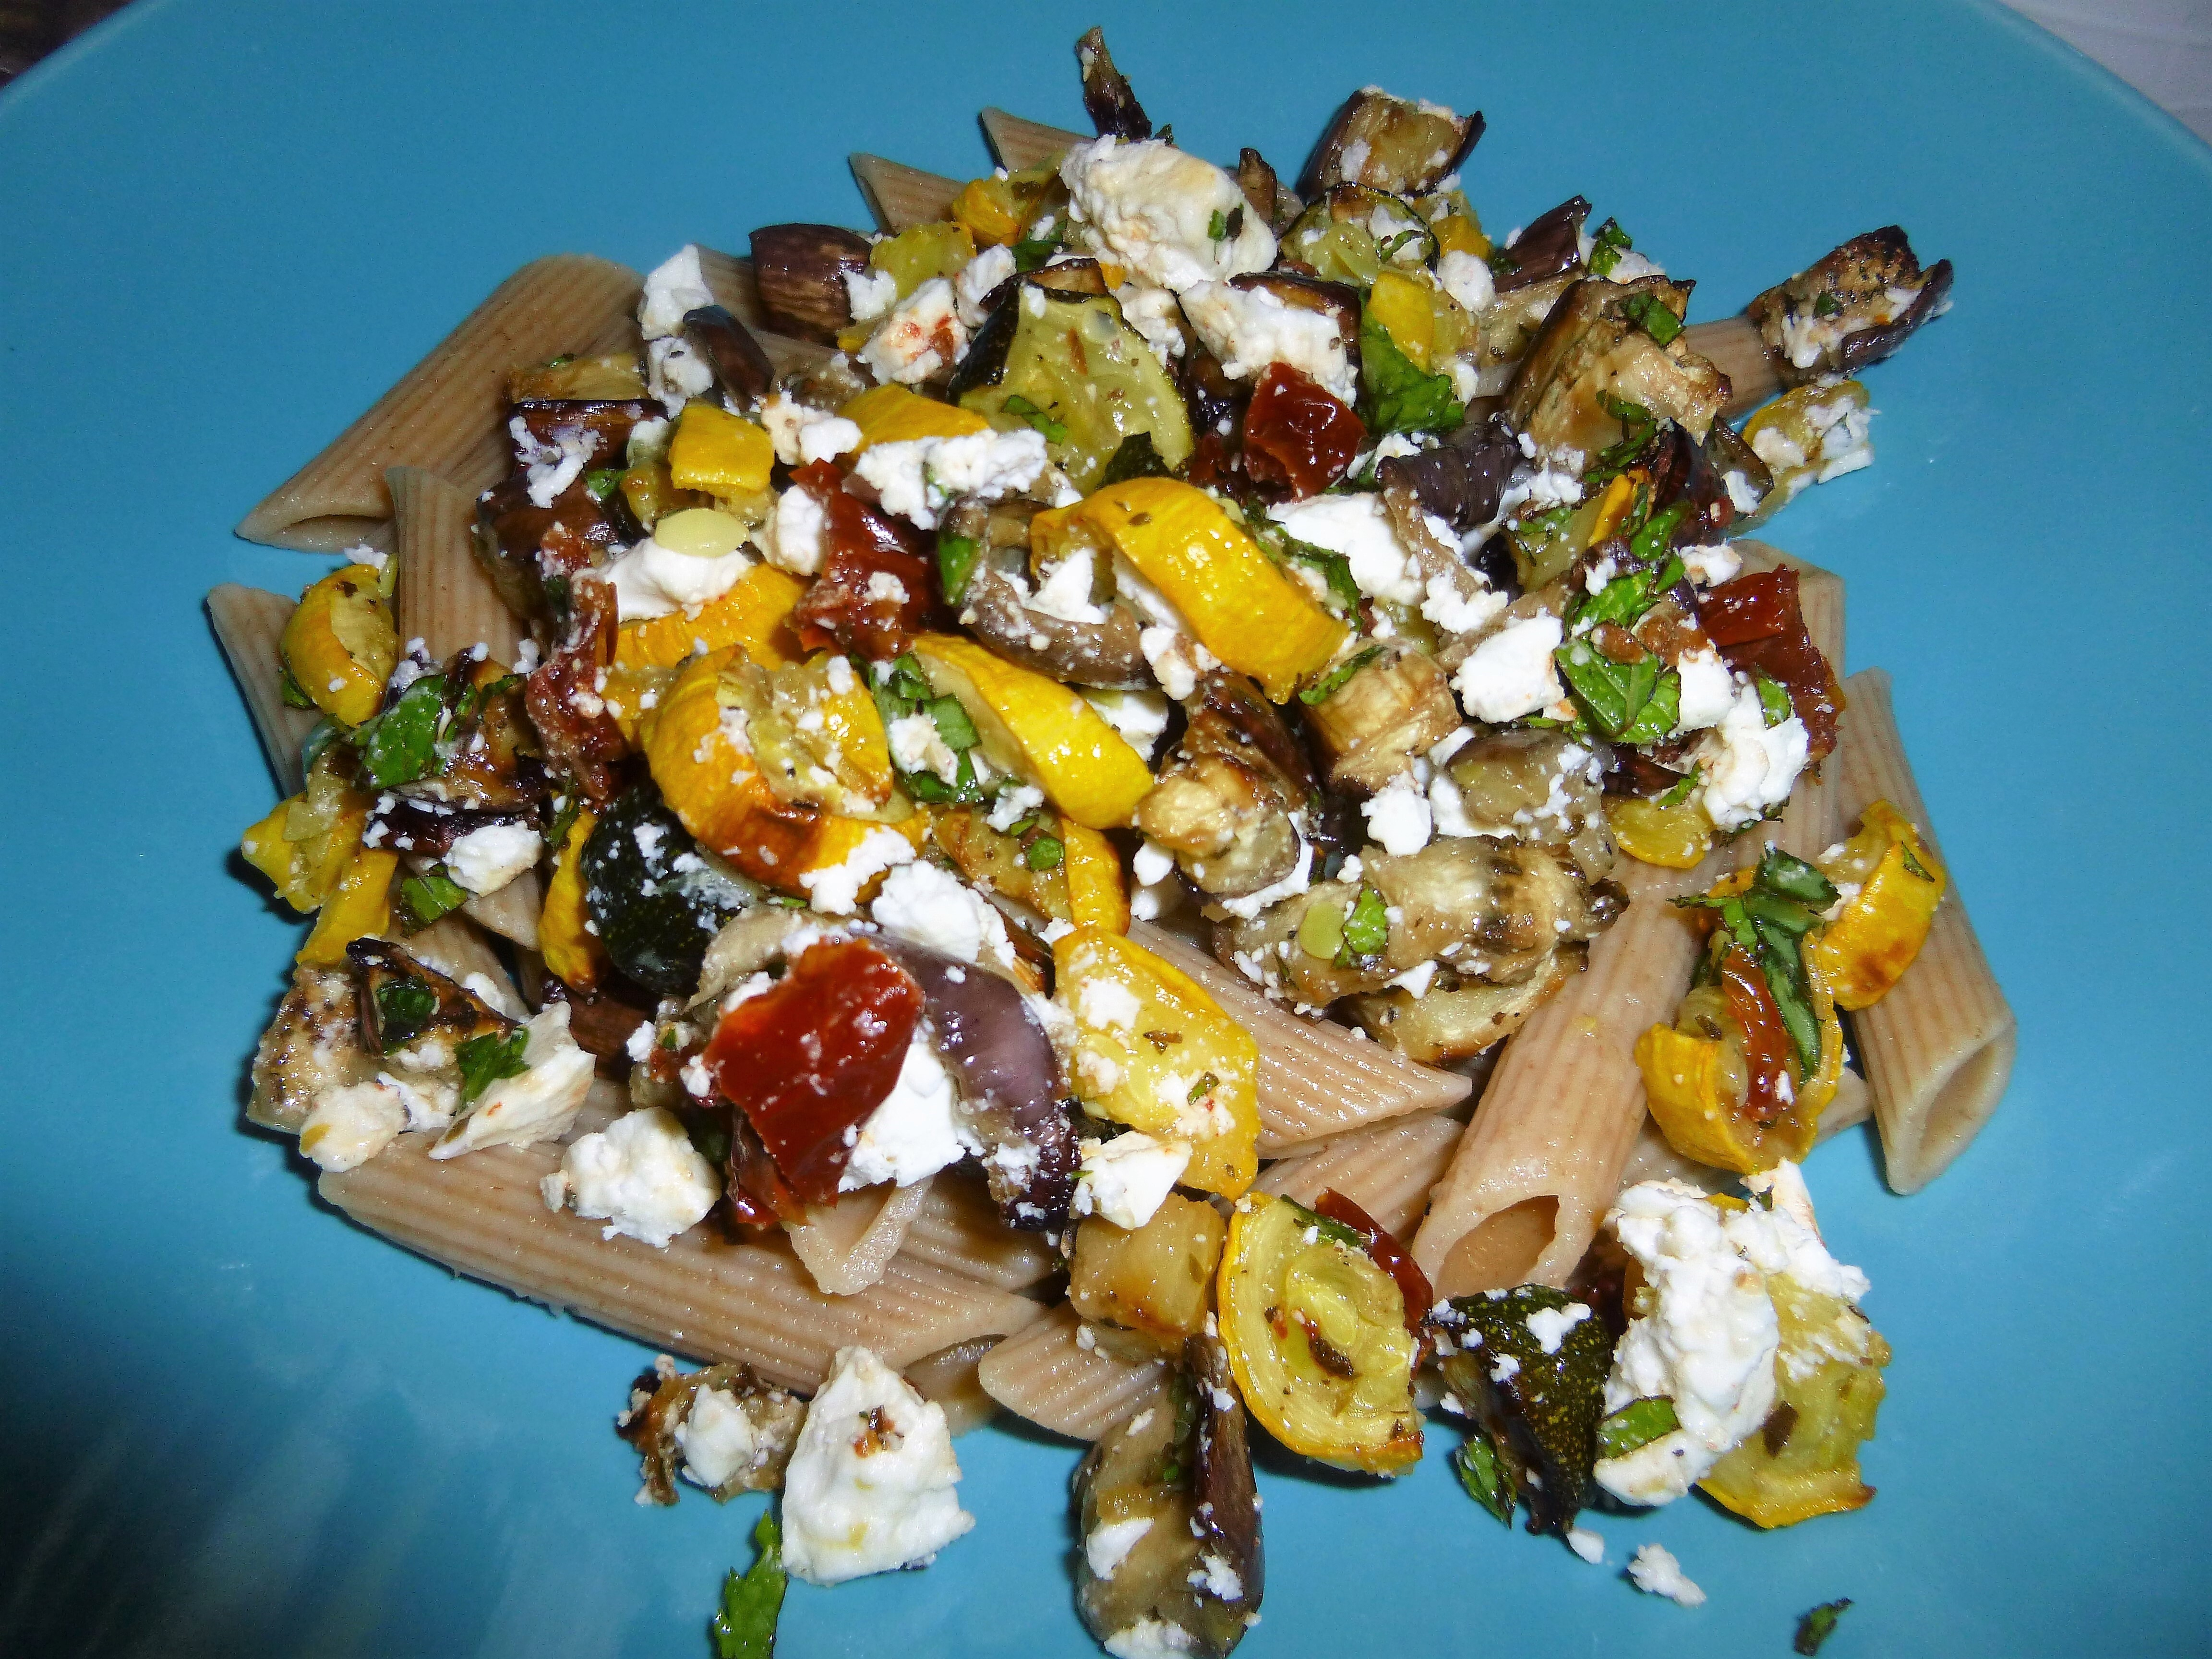 Roasted Garden Vegetables with Whole Wheat Pasta, Goats Cheese and a Lemon and Balsamic Dressing Recipe